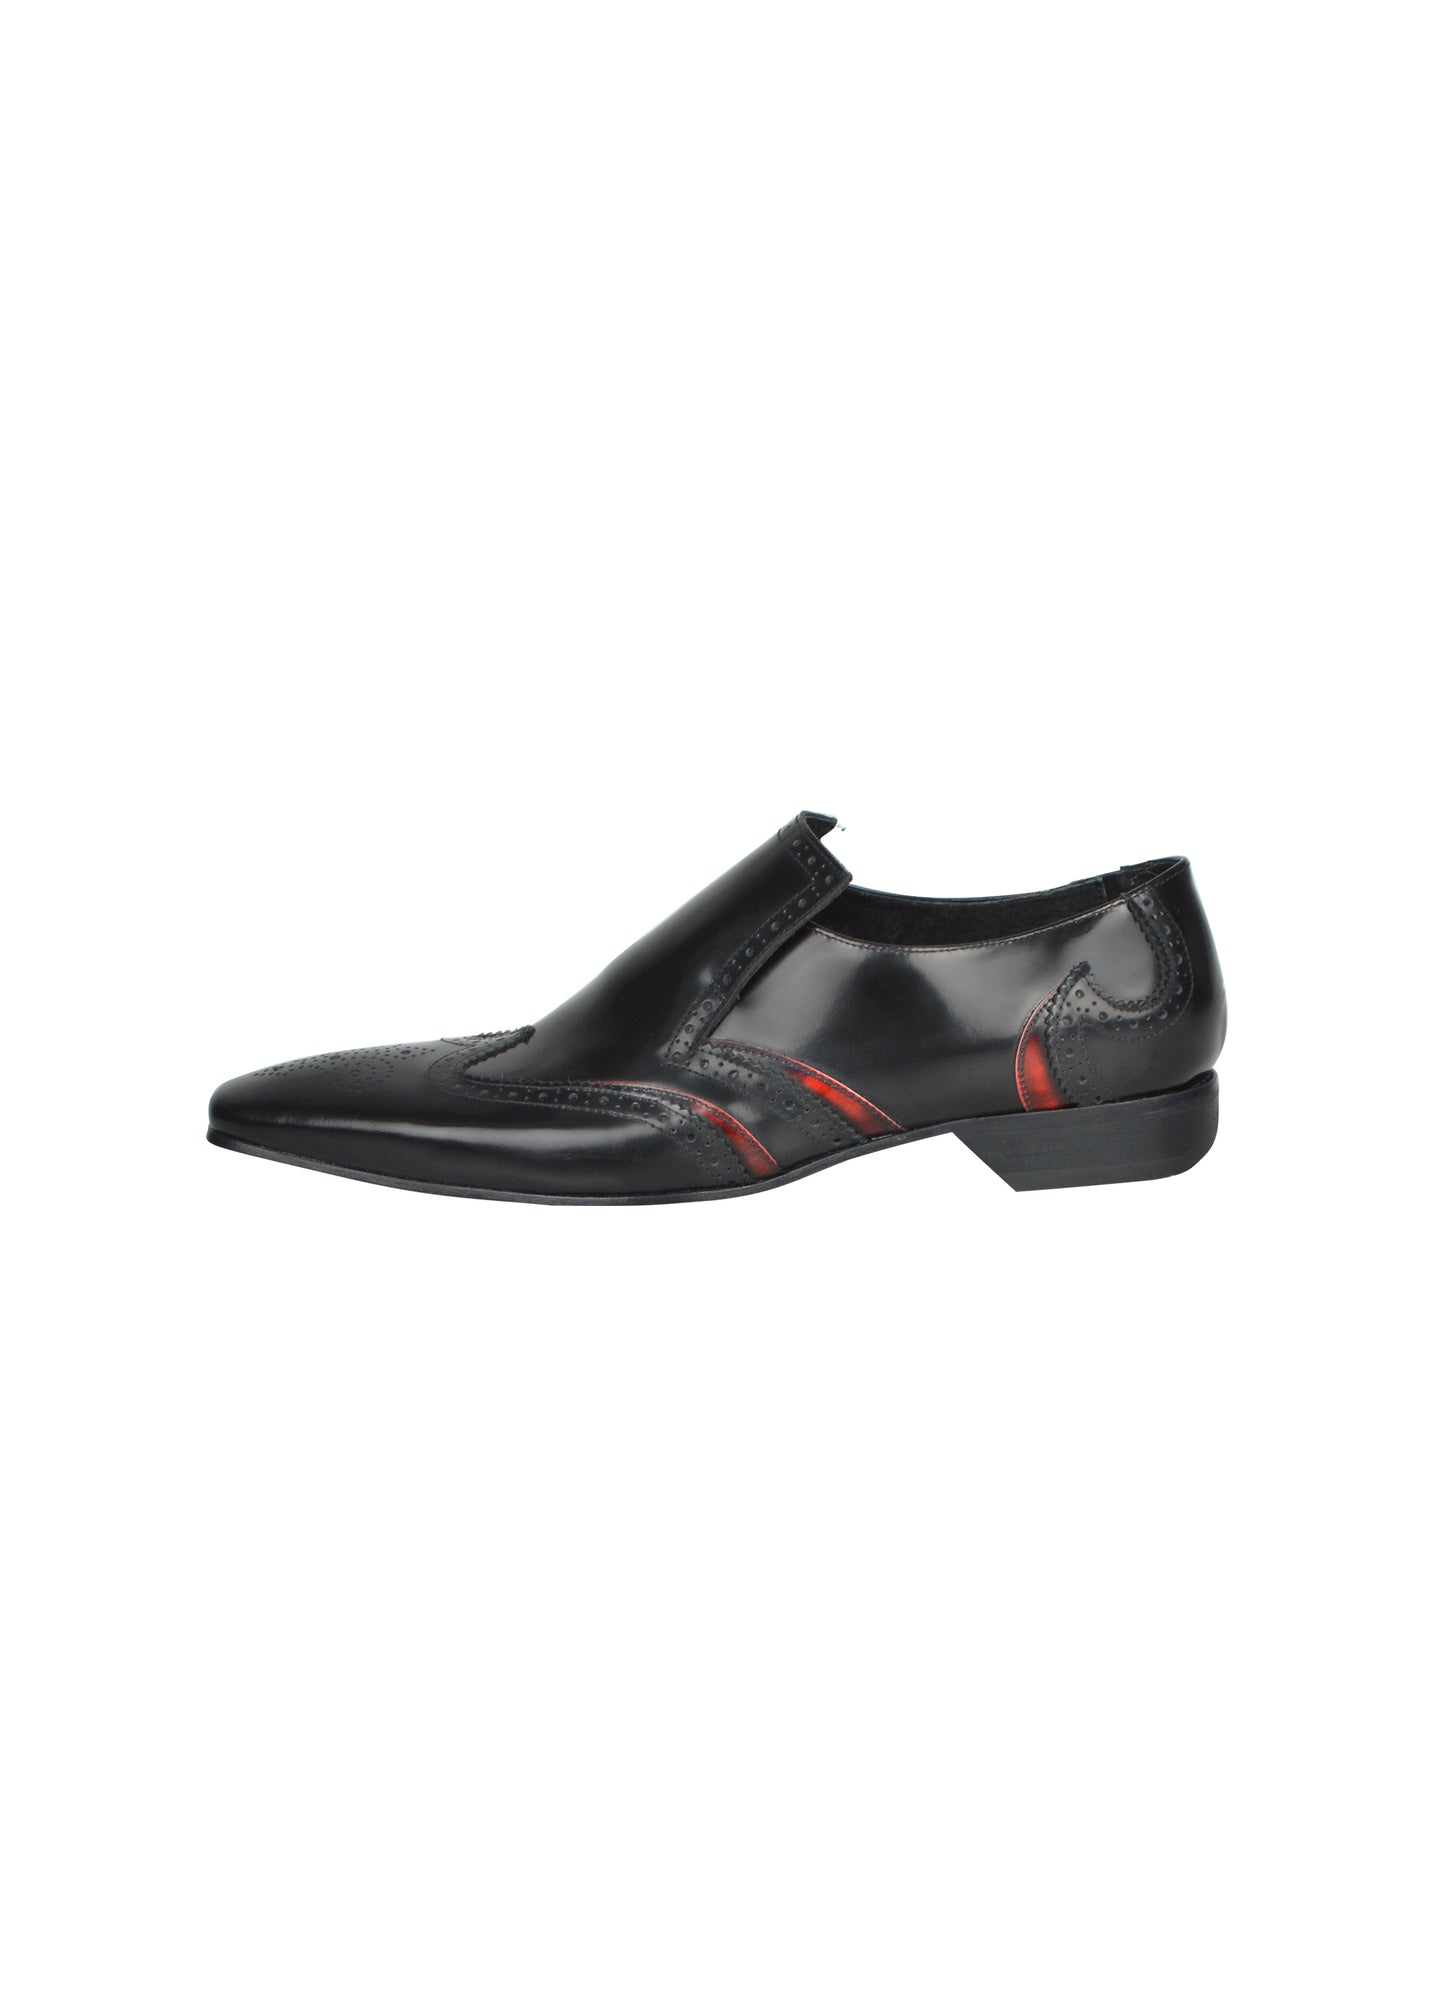 Jeffery West - Slip On Brogue - 100292 - Black